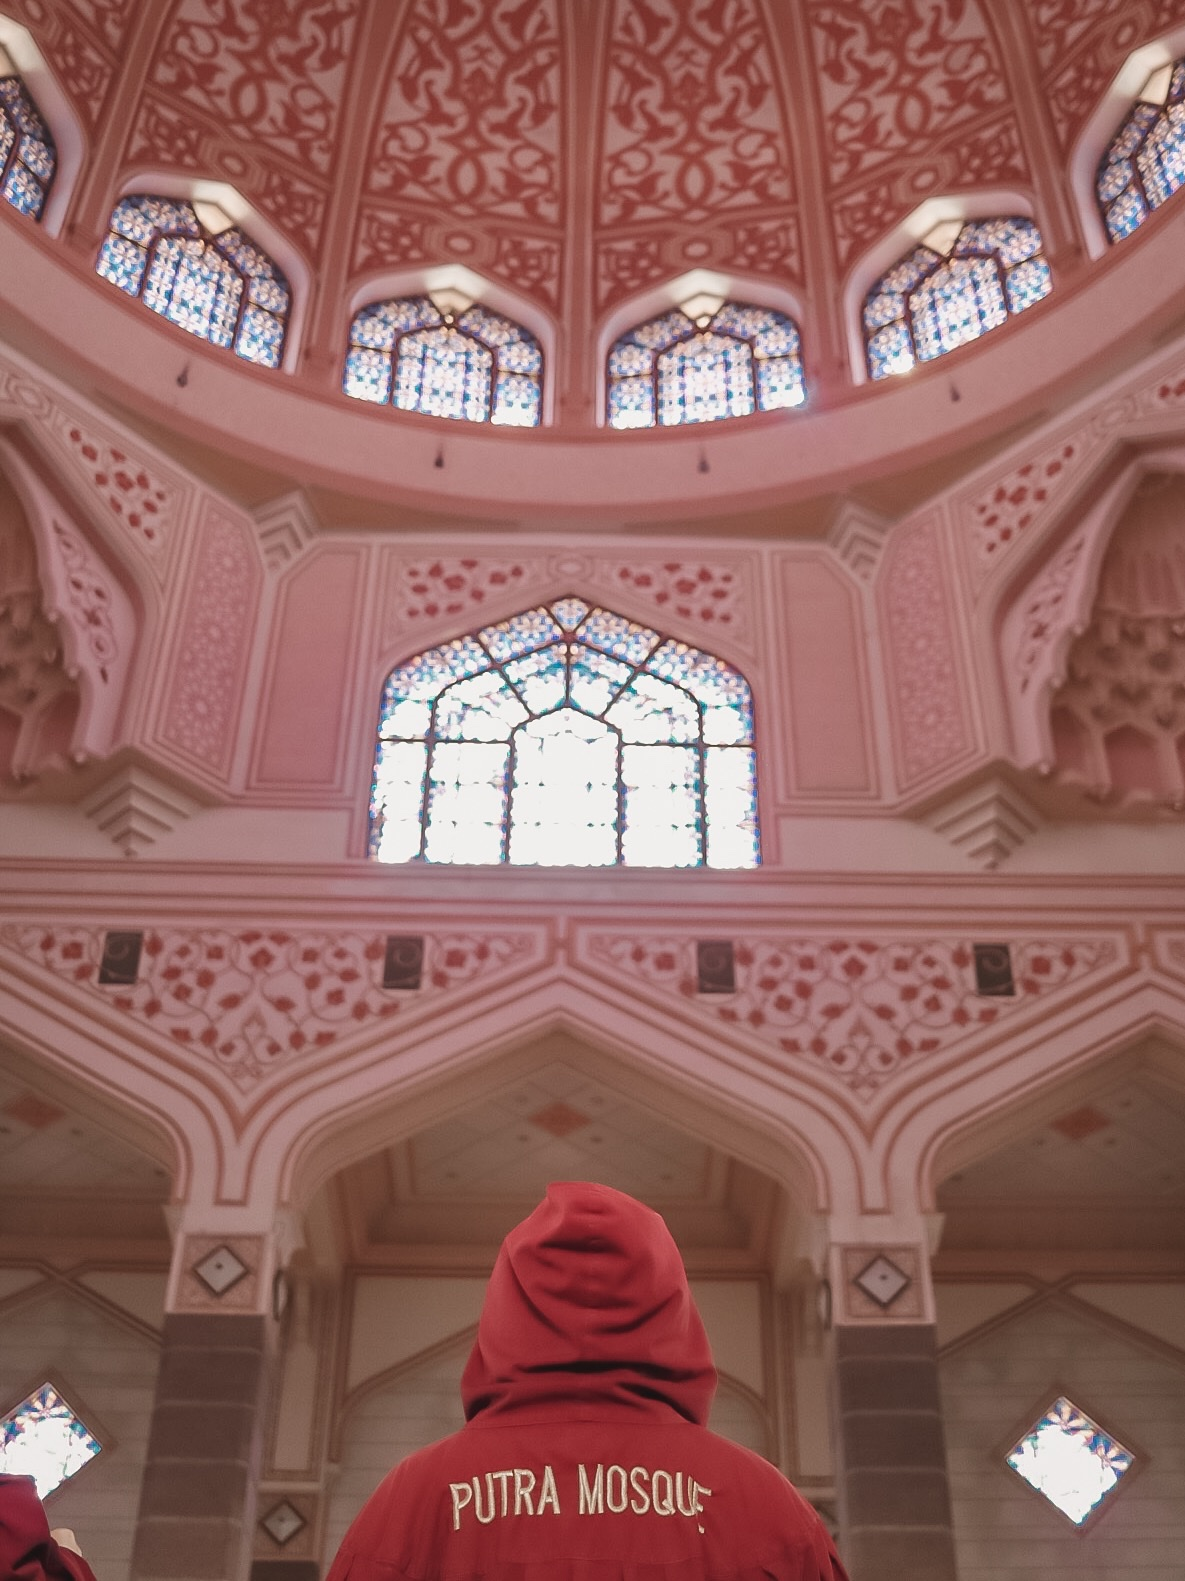 Illustrated by Sade - Inside the pink mosque